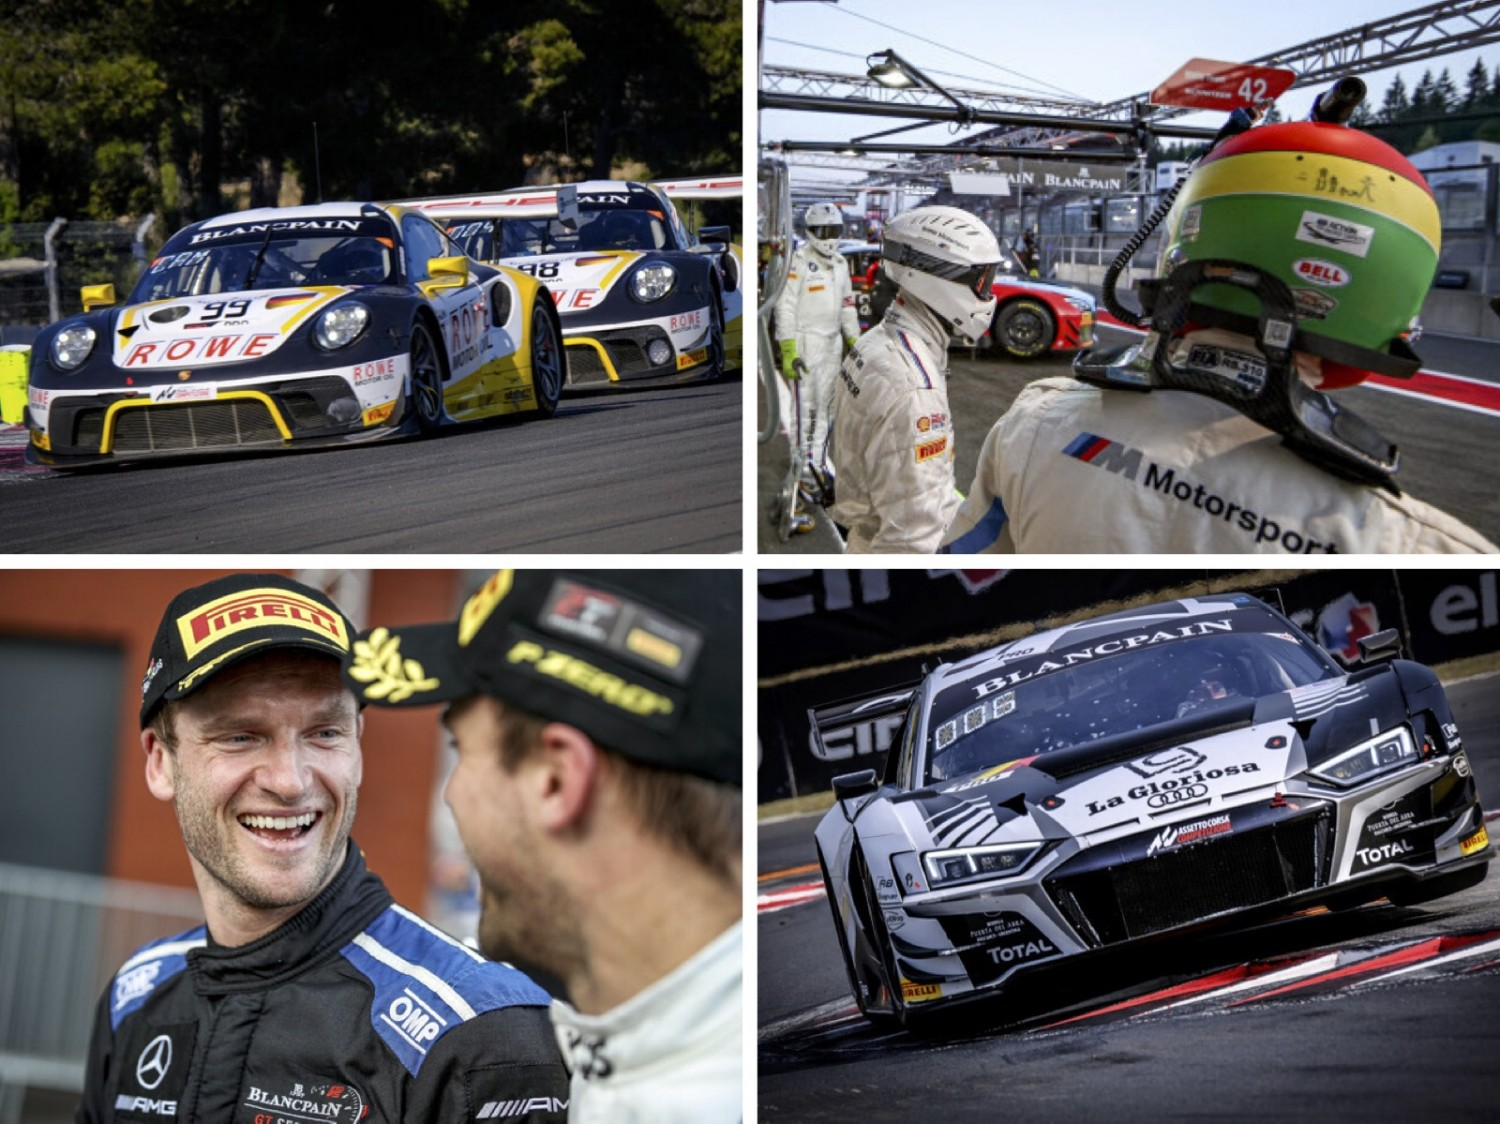 Elite drivers set for FIA GT World Cup showdown in Macau